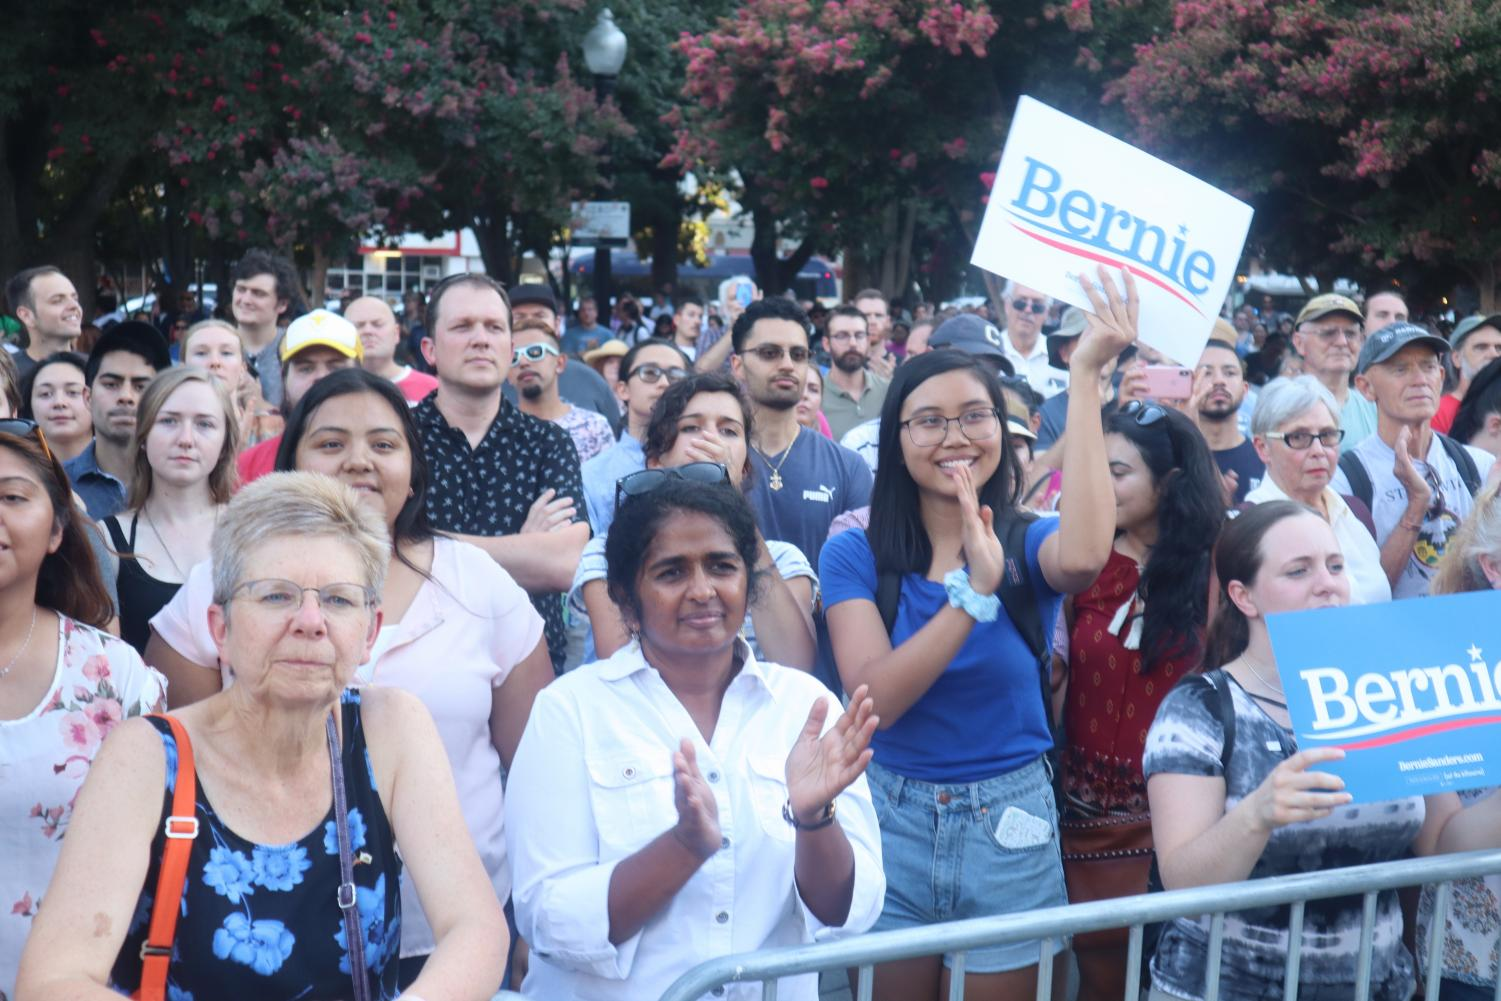 Attendees+watch+Bernie+Sanders+speak+at+a+Thursday%2C+Aug.+22%2C+2019%2C+campaign+rally+at+Cesar+Chavez+Plaza.+Sanders+said+that+to+bring+about+the+changes+that+compose+his+platform+it+would+take+work+from+his+supporters+beyond+winning+the+presidency.